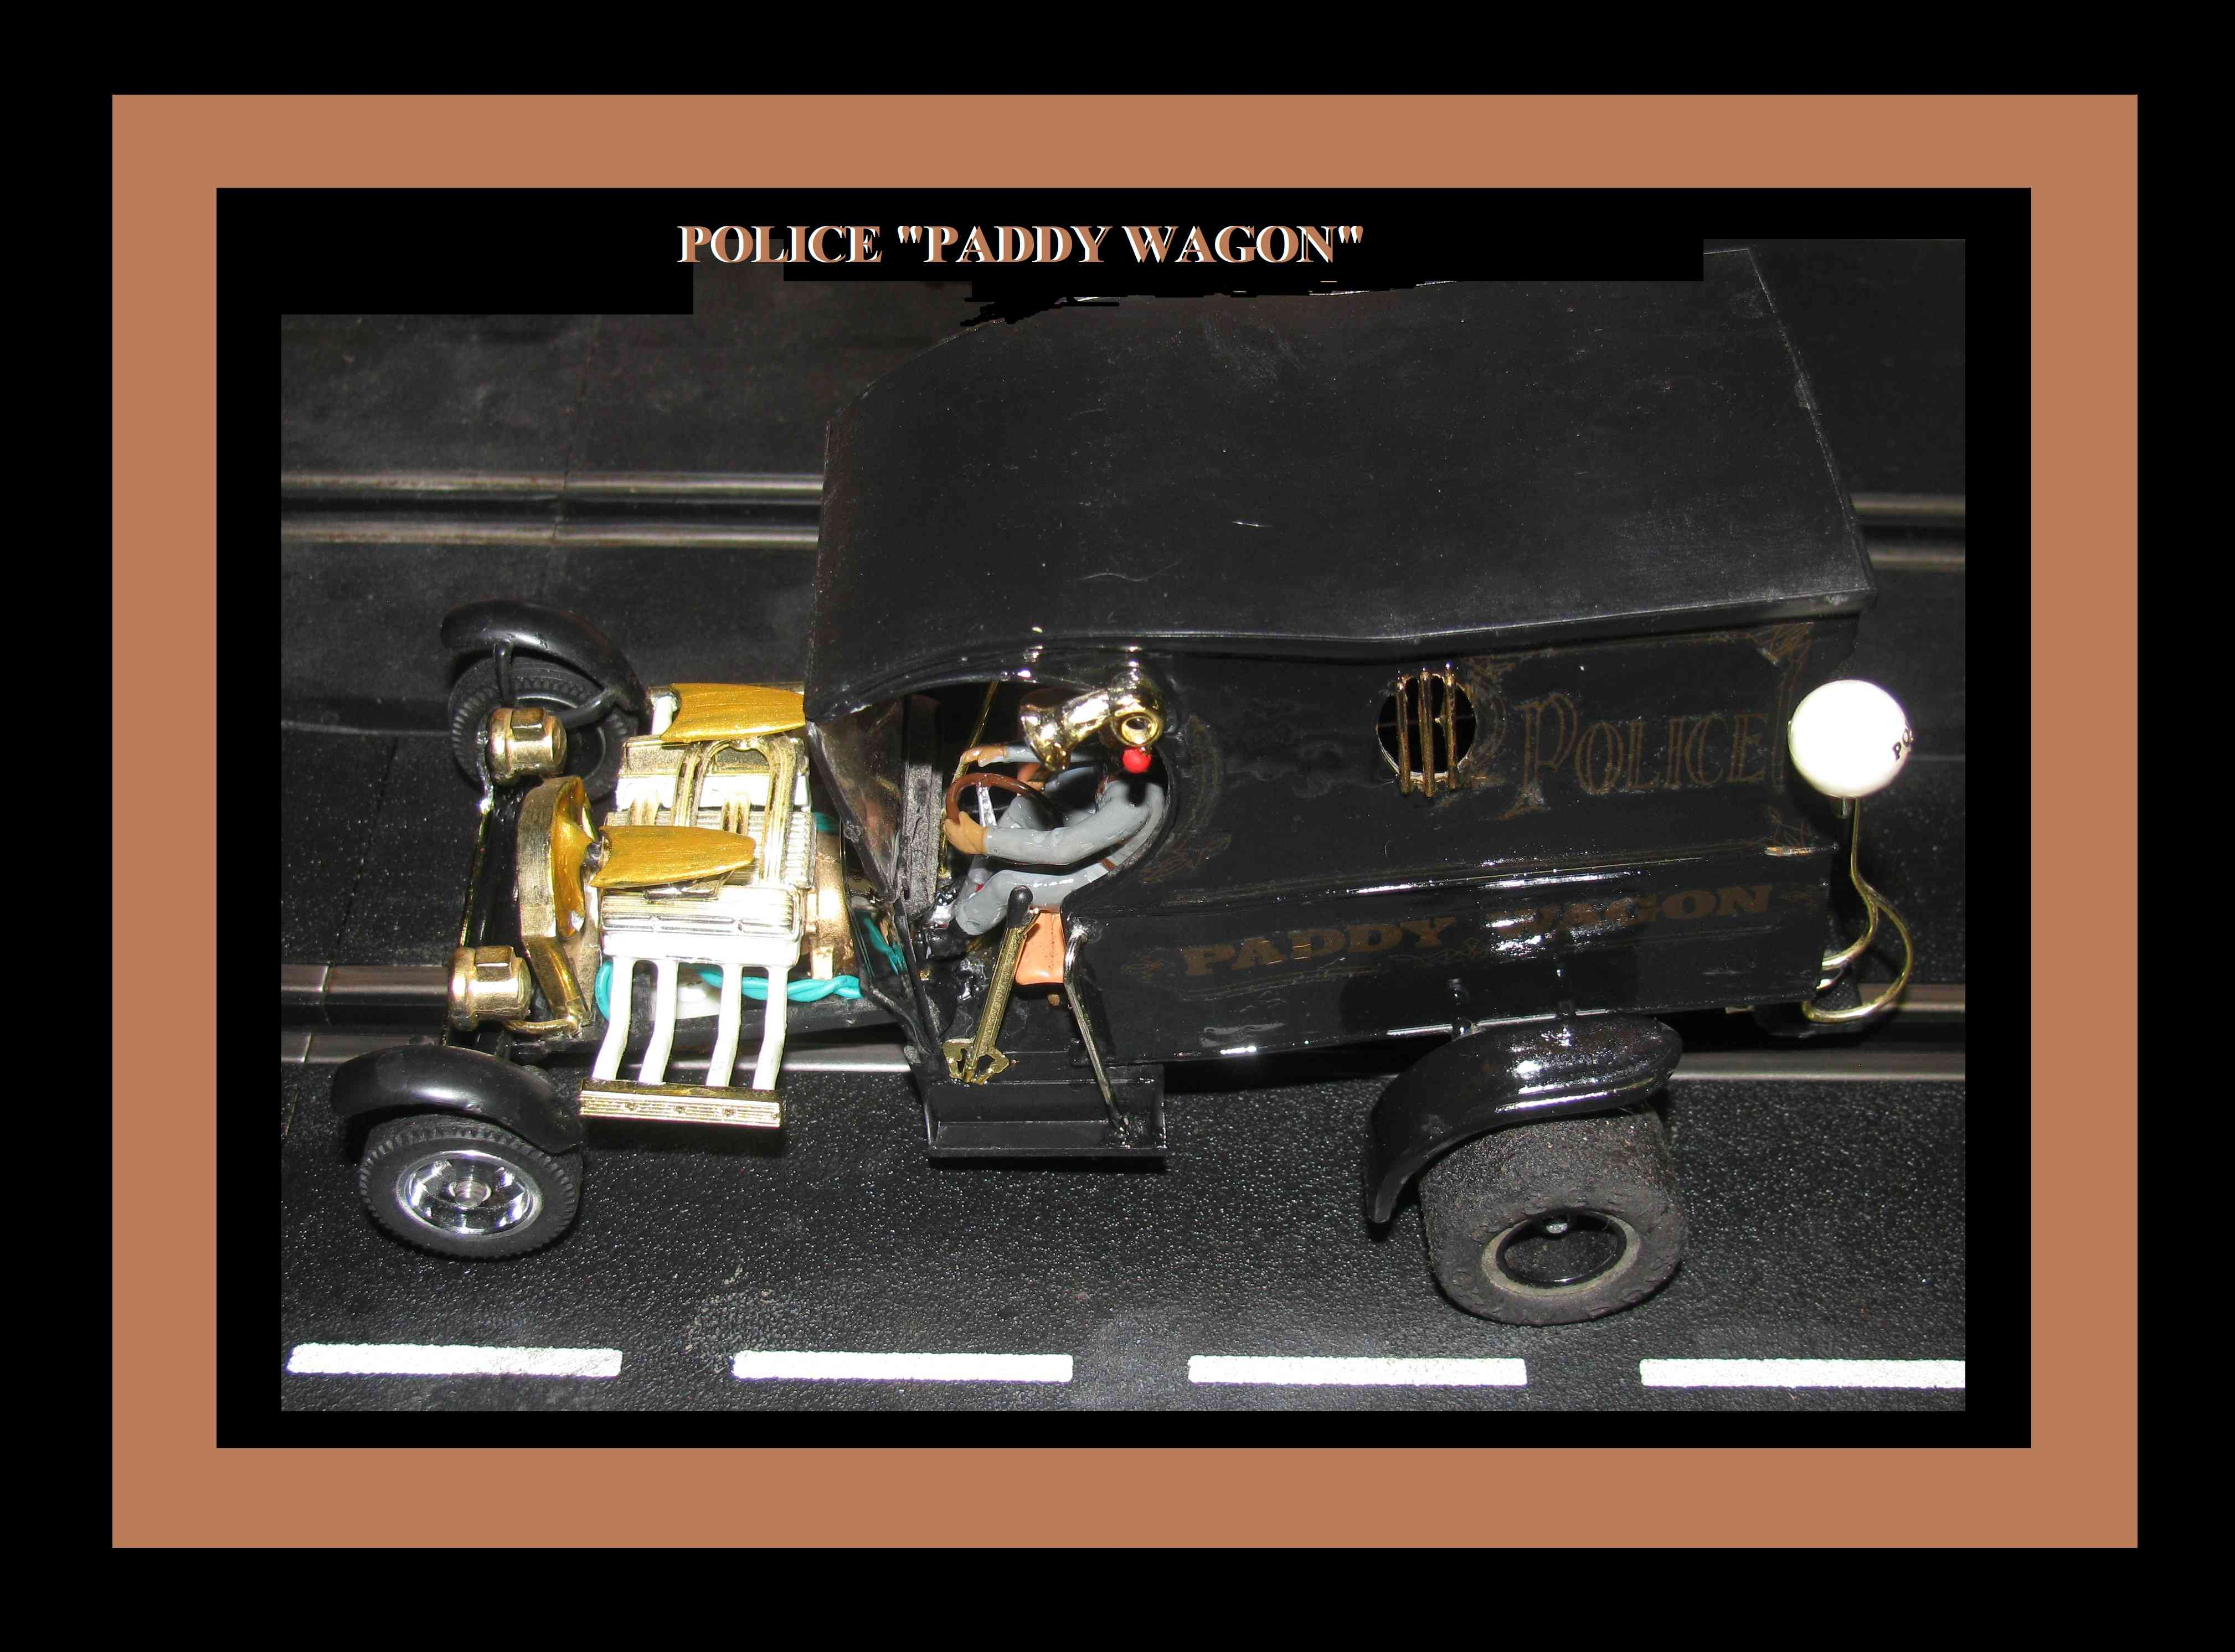 * SUMMER SALE * Monogram Paddy Wagon Police Slot Car 1/24 Scale with driver & Guards